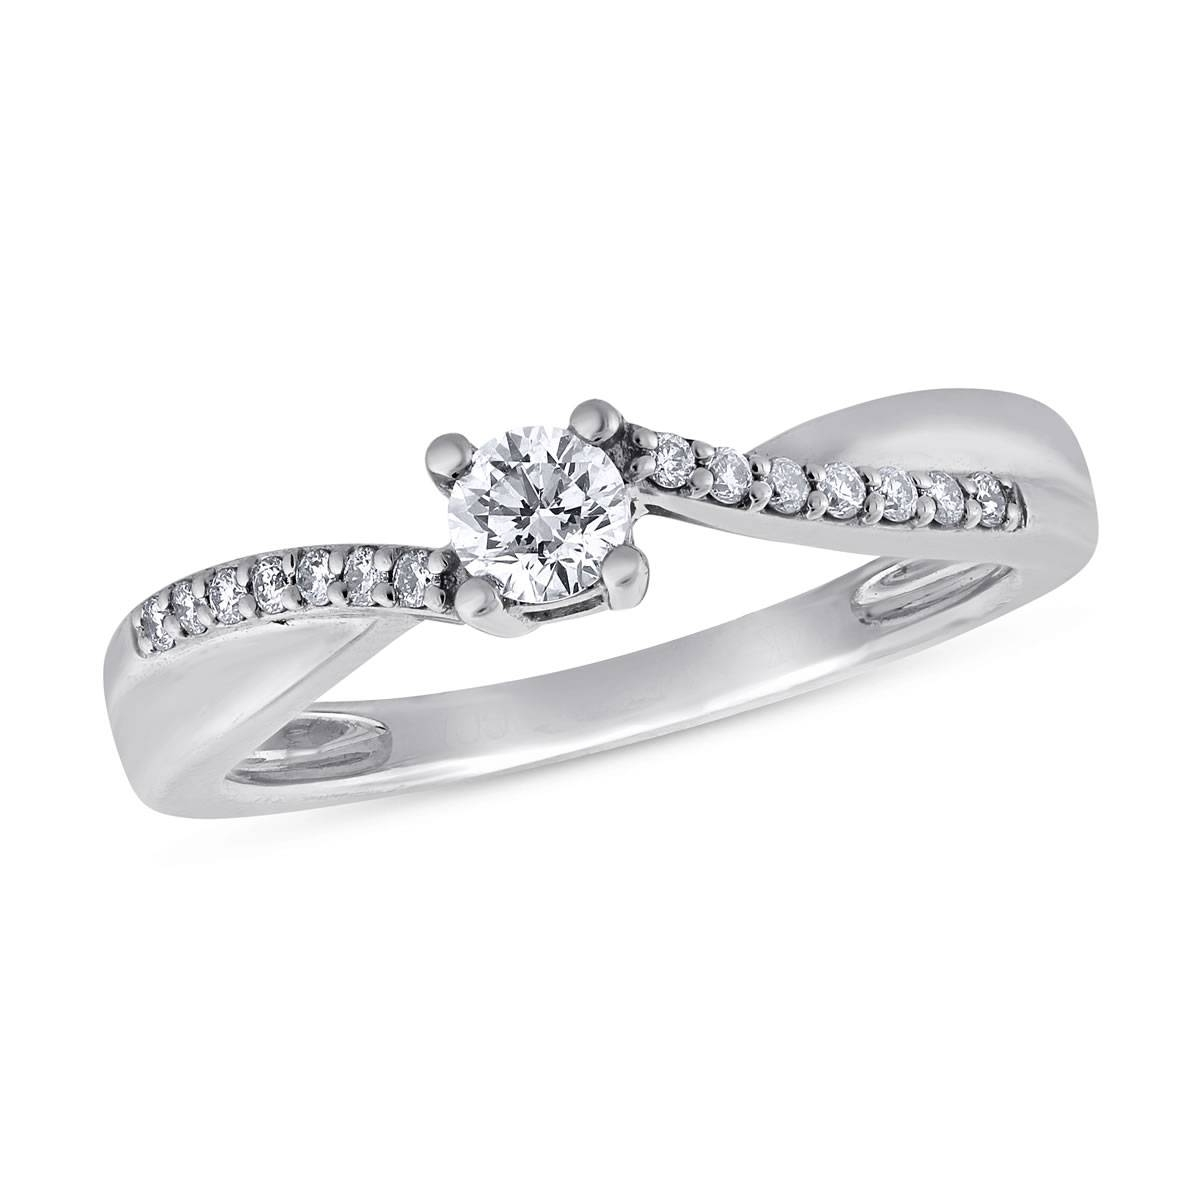 Calista, 1/3 Ctw Round Cut Diamond Engagement Ring In 14K White Intended For White Gold Engagement Rings (View 4 of 15)